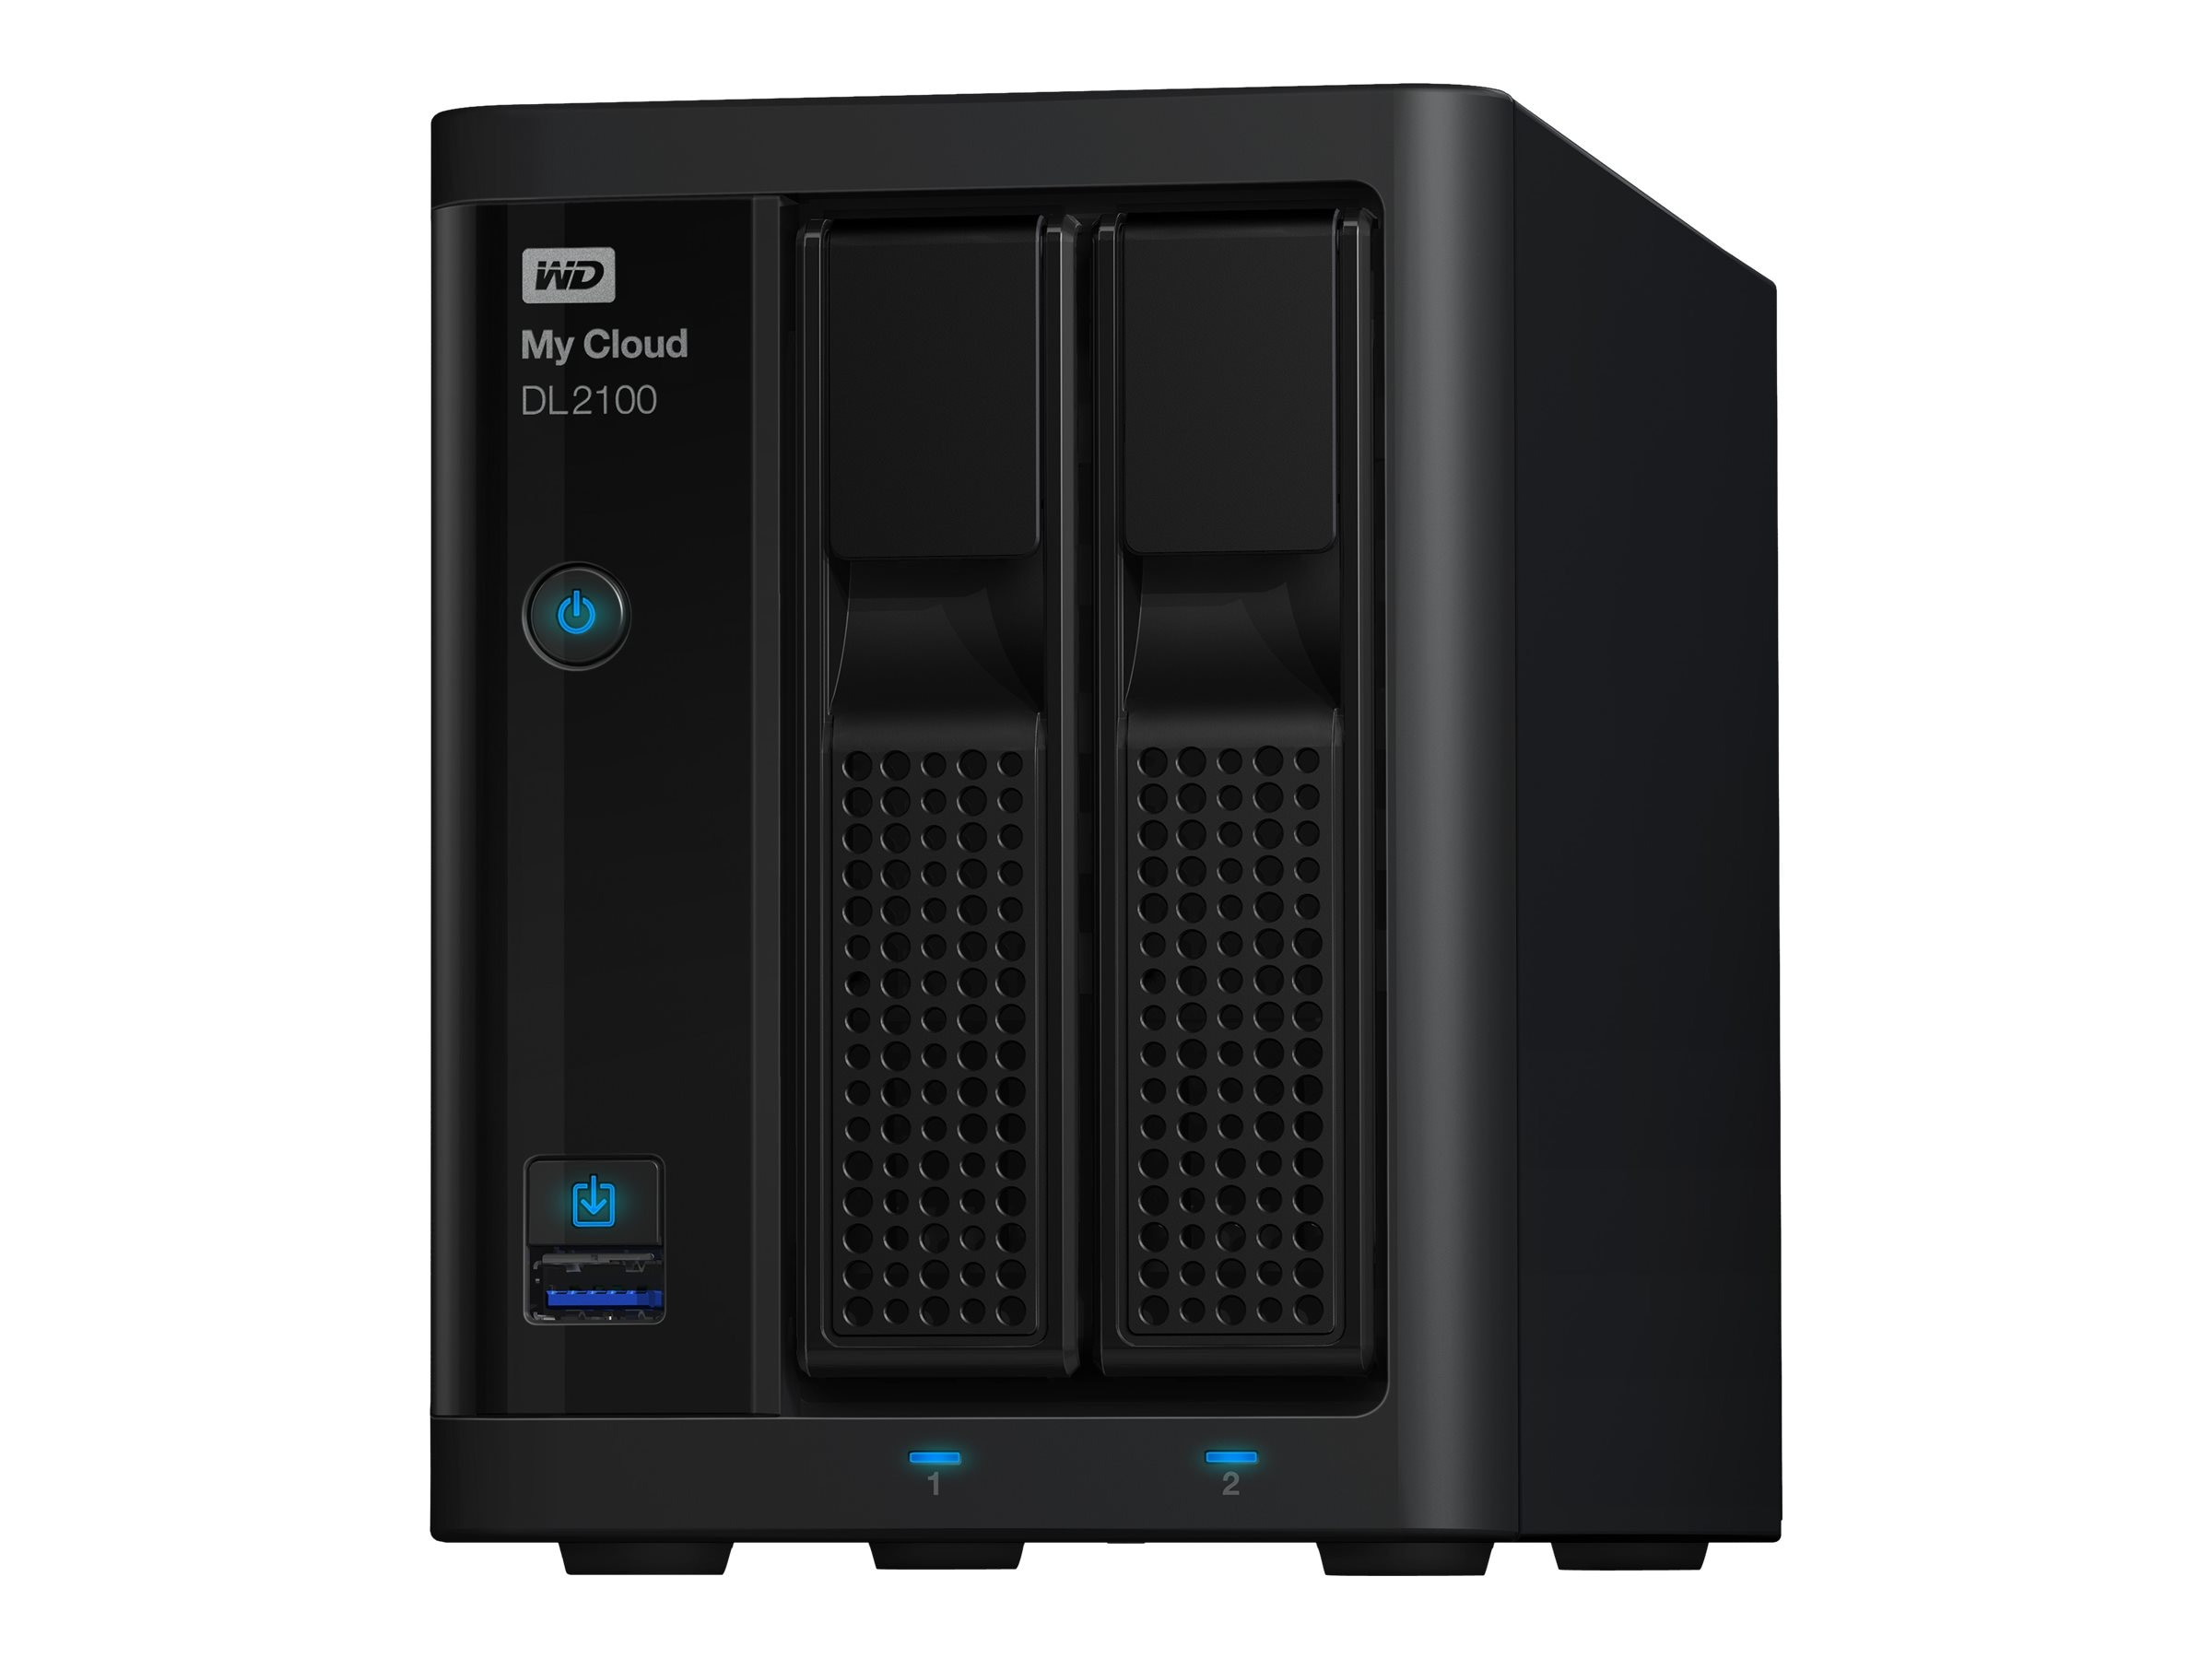 WD My Cloud DL2100 Network Attached Storage - Diskless, WDBBAZ0000NBK-NESN, 18442712, Network Attached Storage